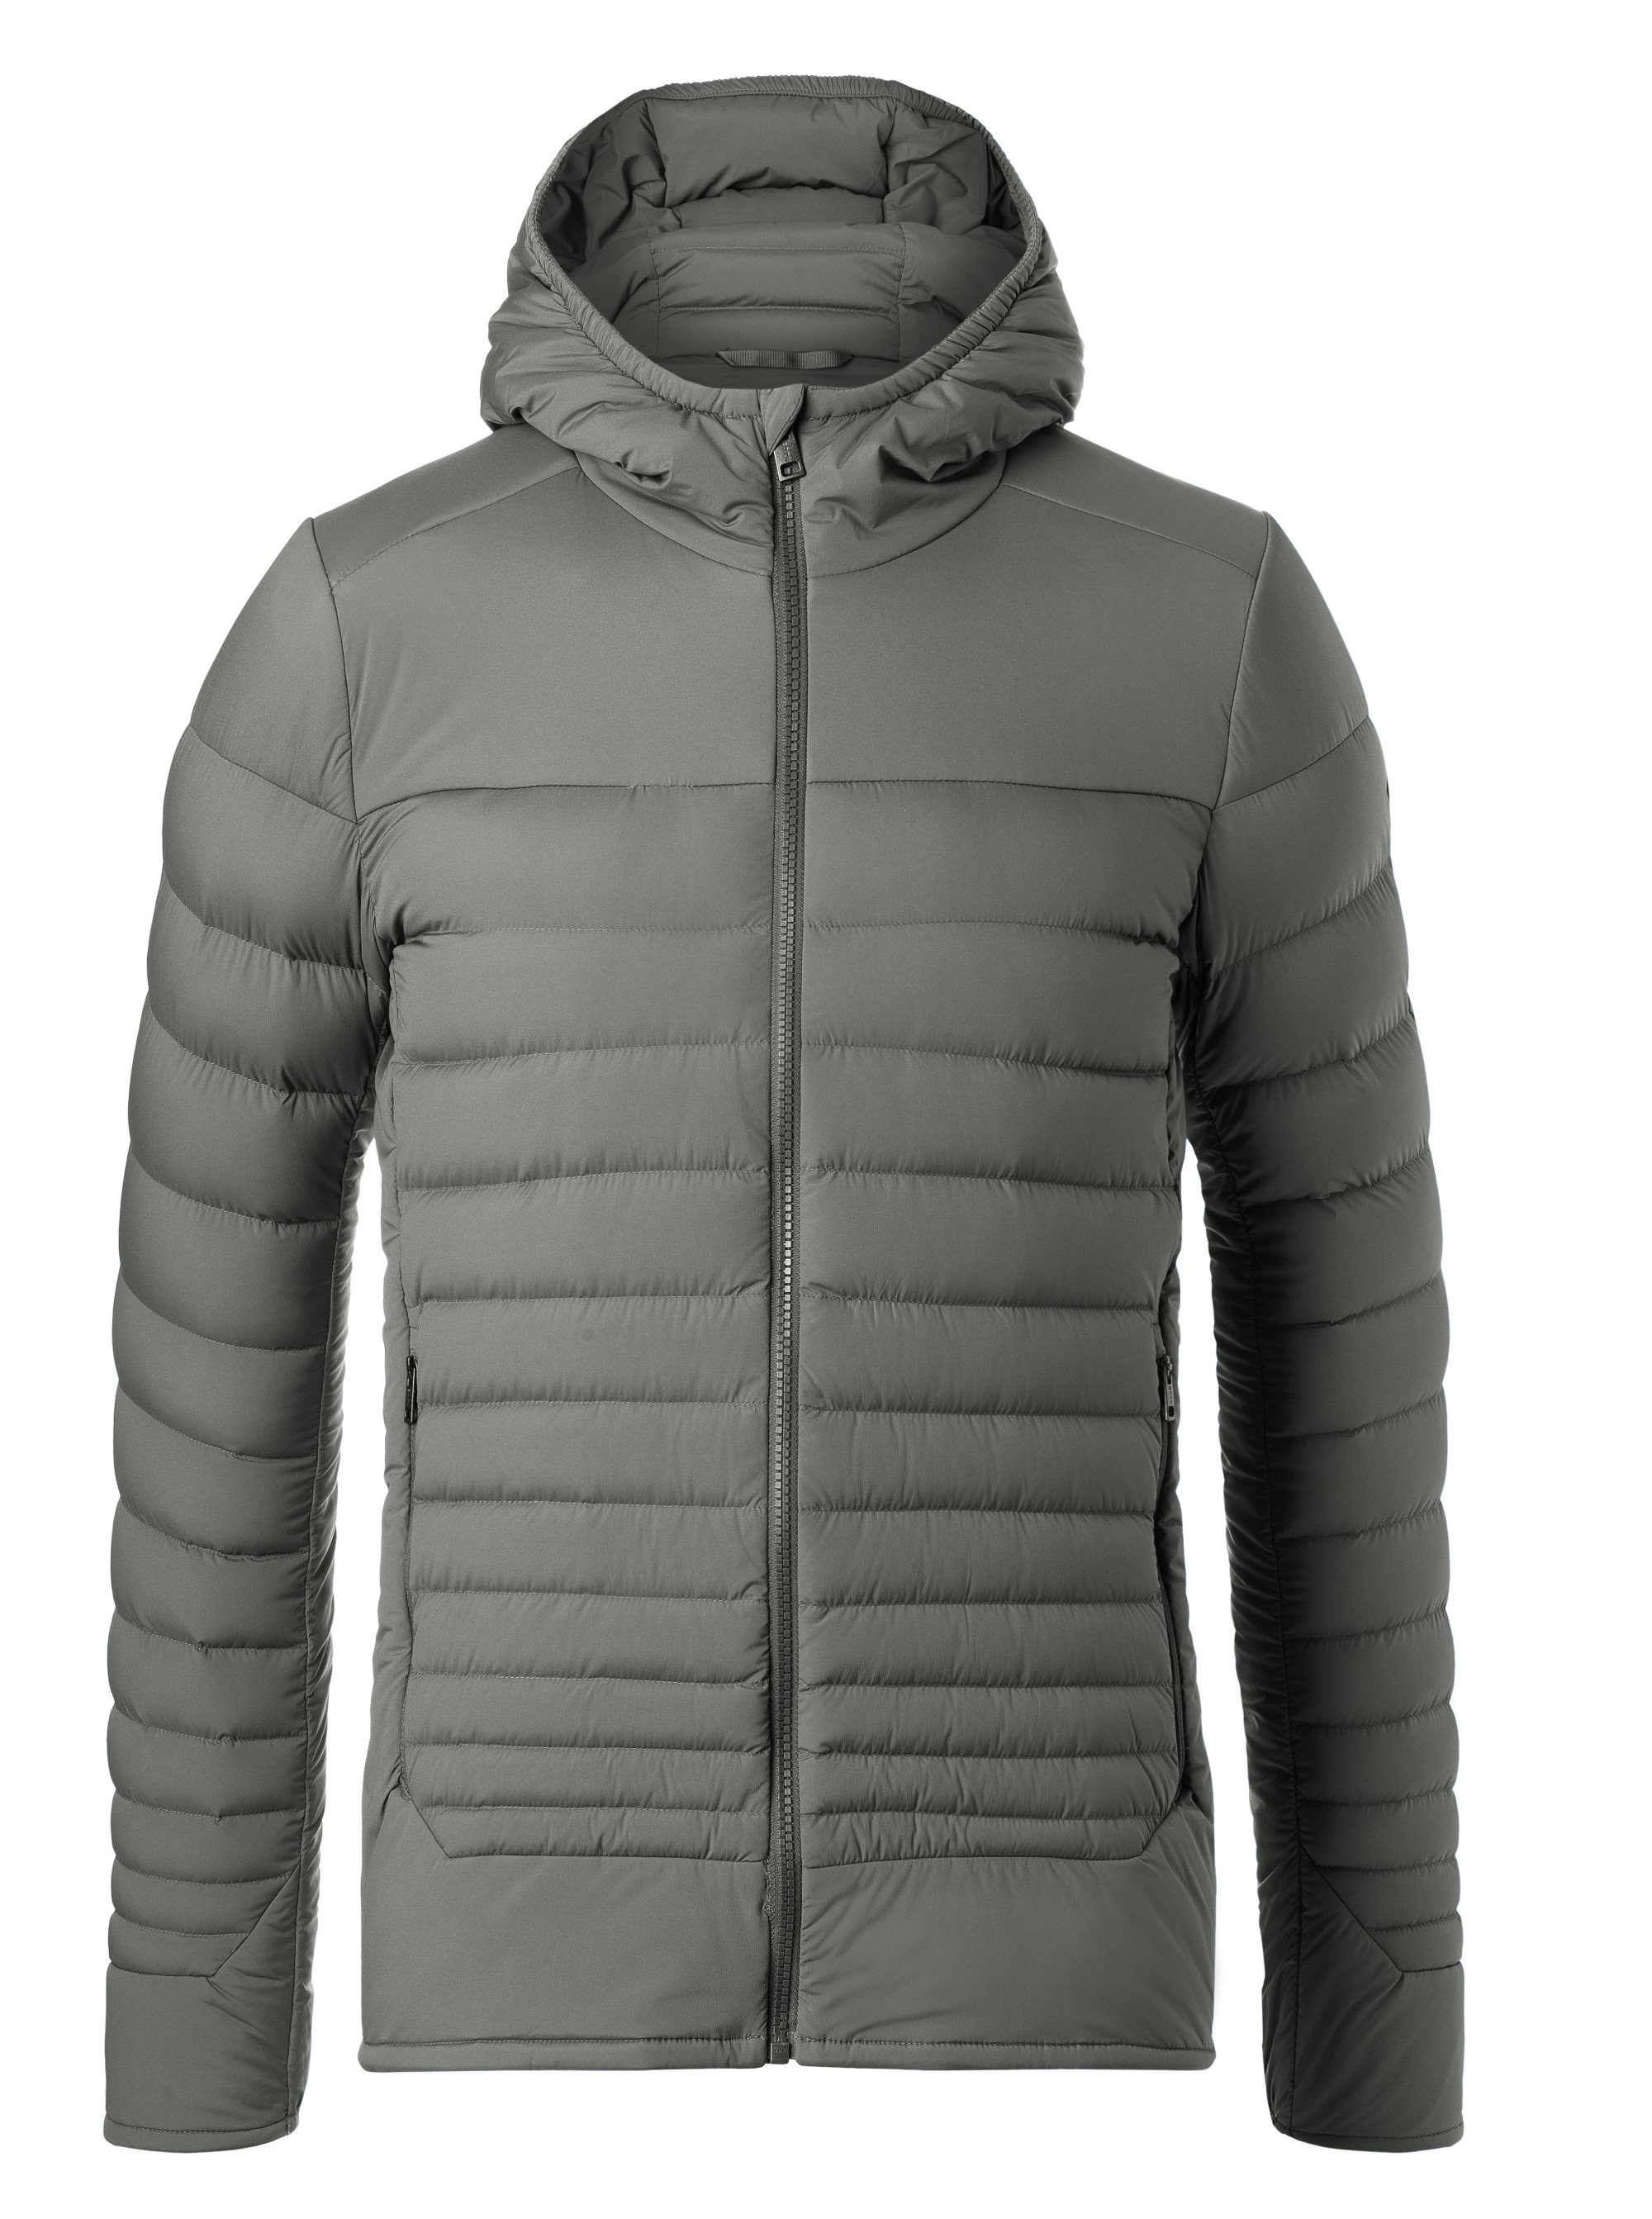 Blackcomb Stretch Hooded Jacke - Schwarz